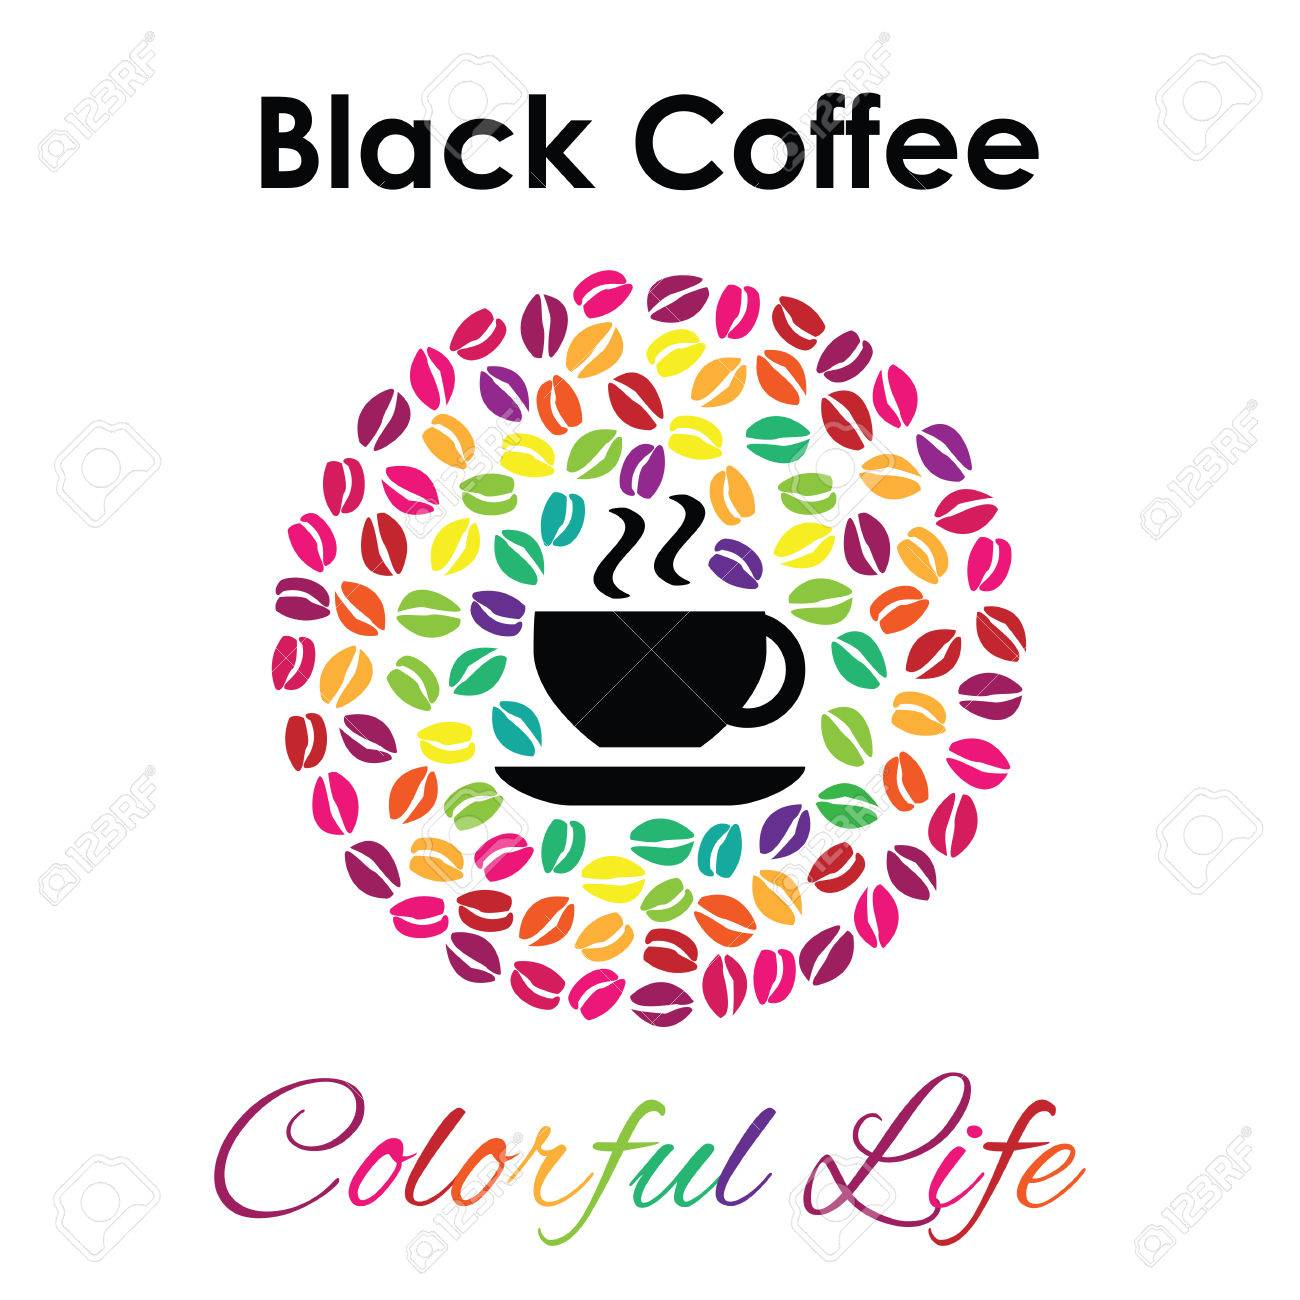 Top Stylish Design For Coffee Shop Or Cafe, Vector Icon Or Logo Coffee KI22